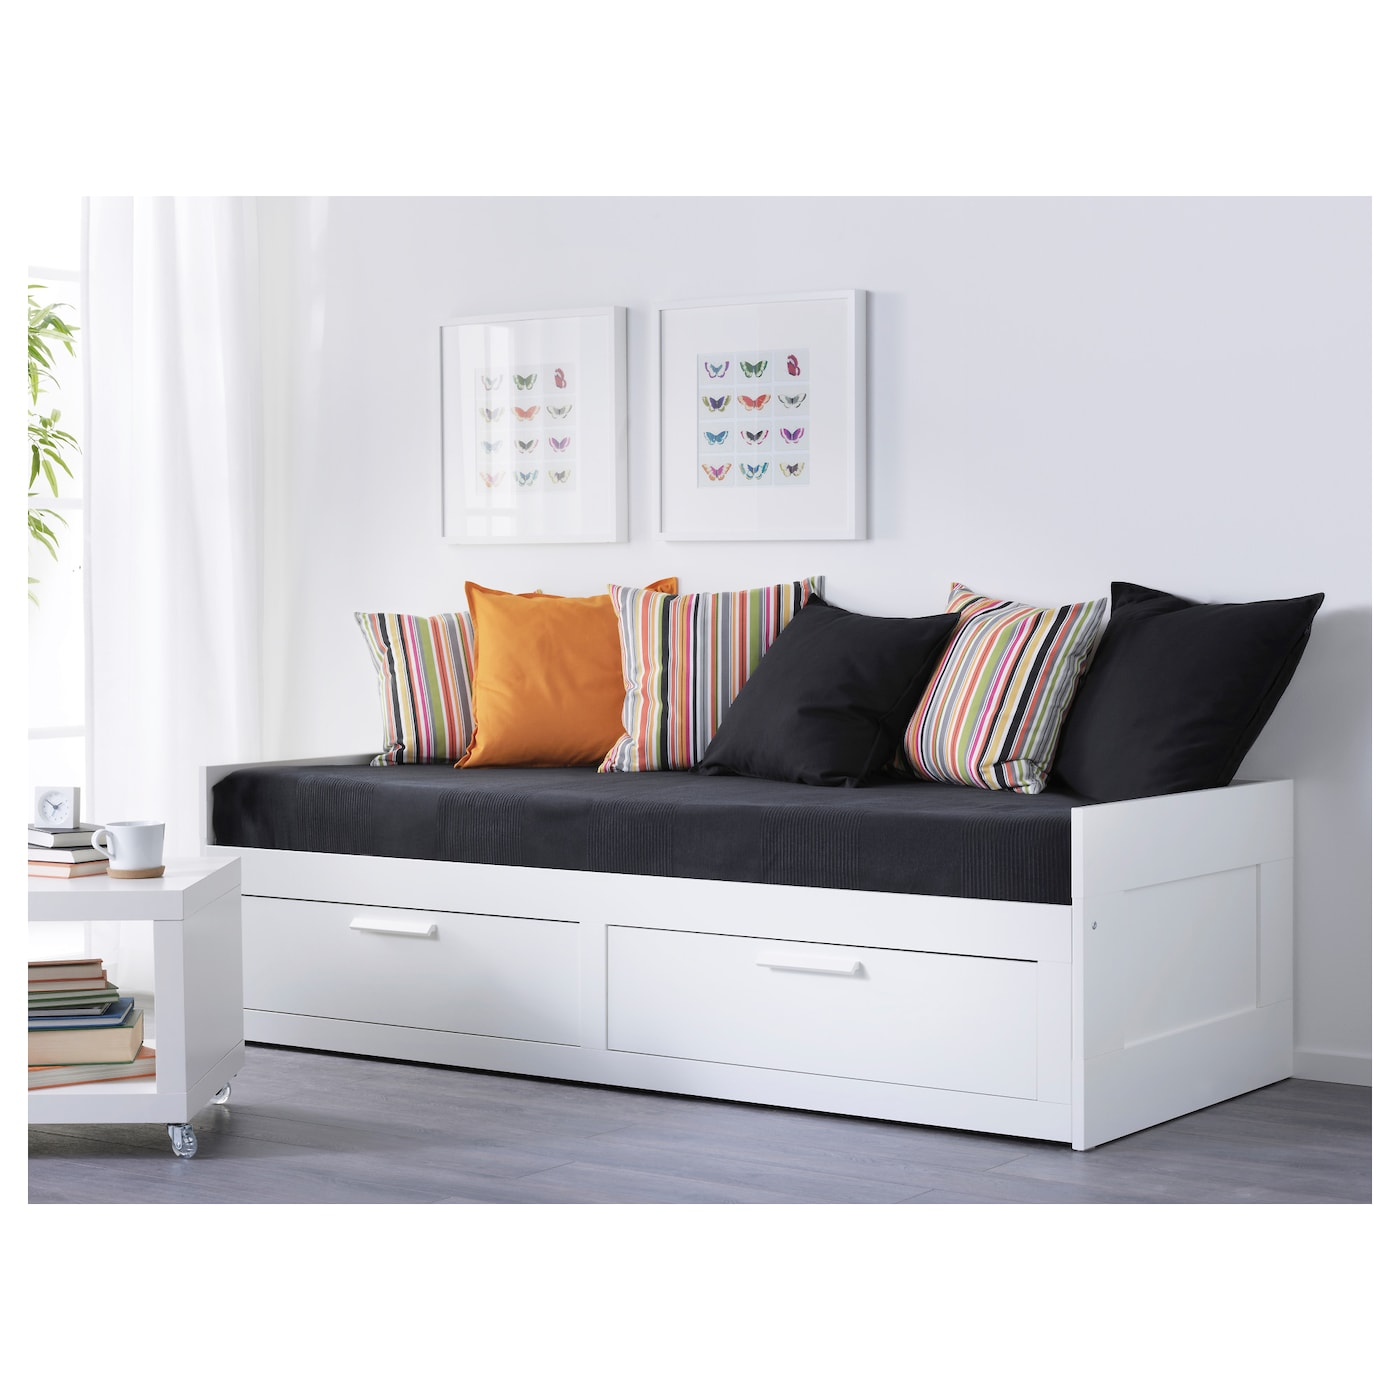 brimnes bedbank met 2 lades wit 80x200 cm ikea. Black Bedroom Furniture Sets. Home Design Ideas